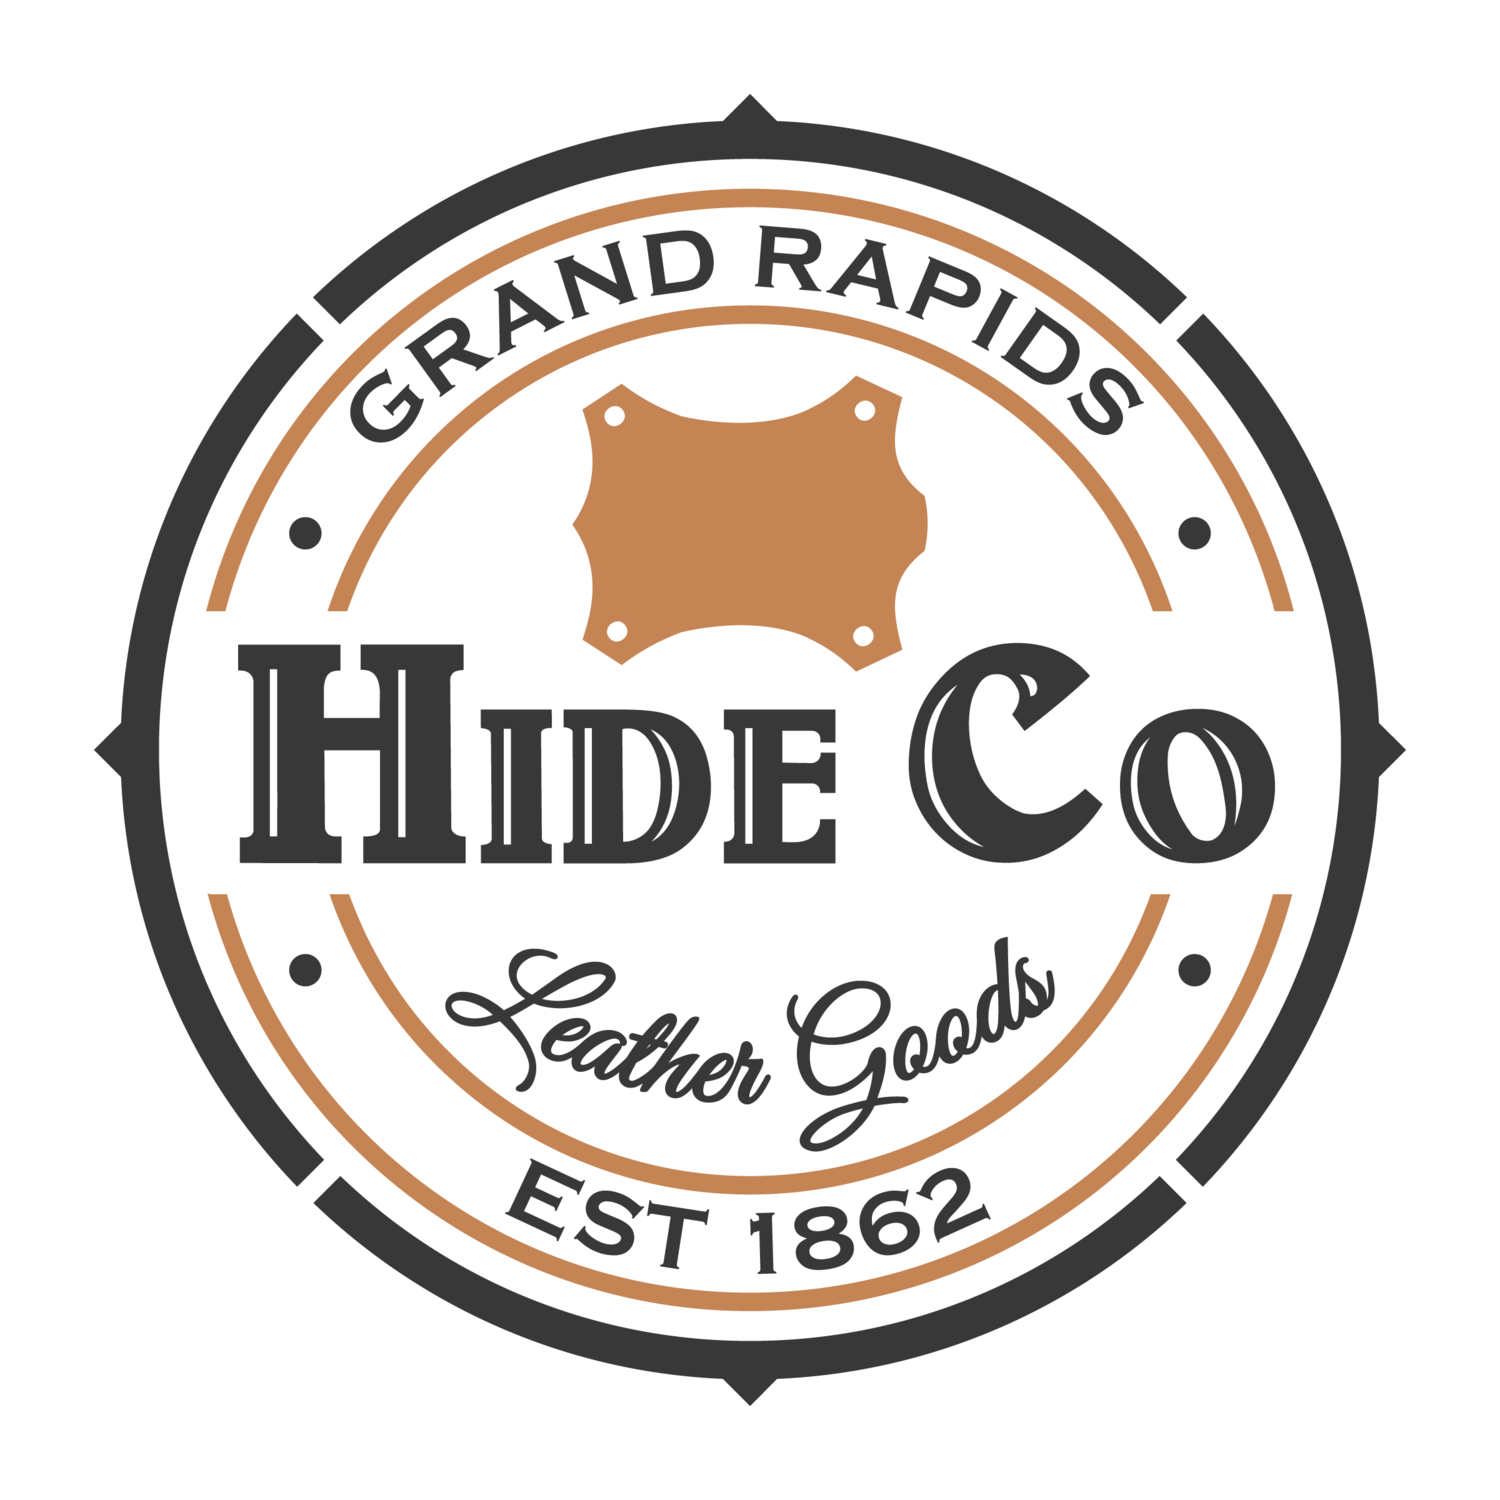 Grand Rapids Hide Co